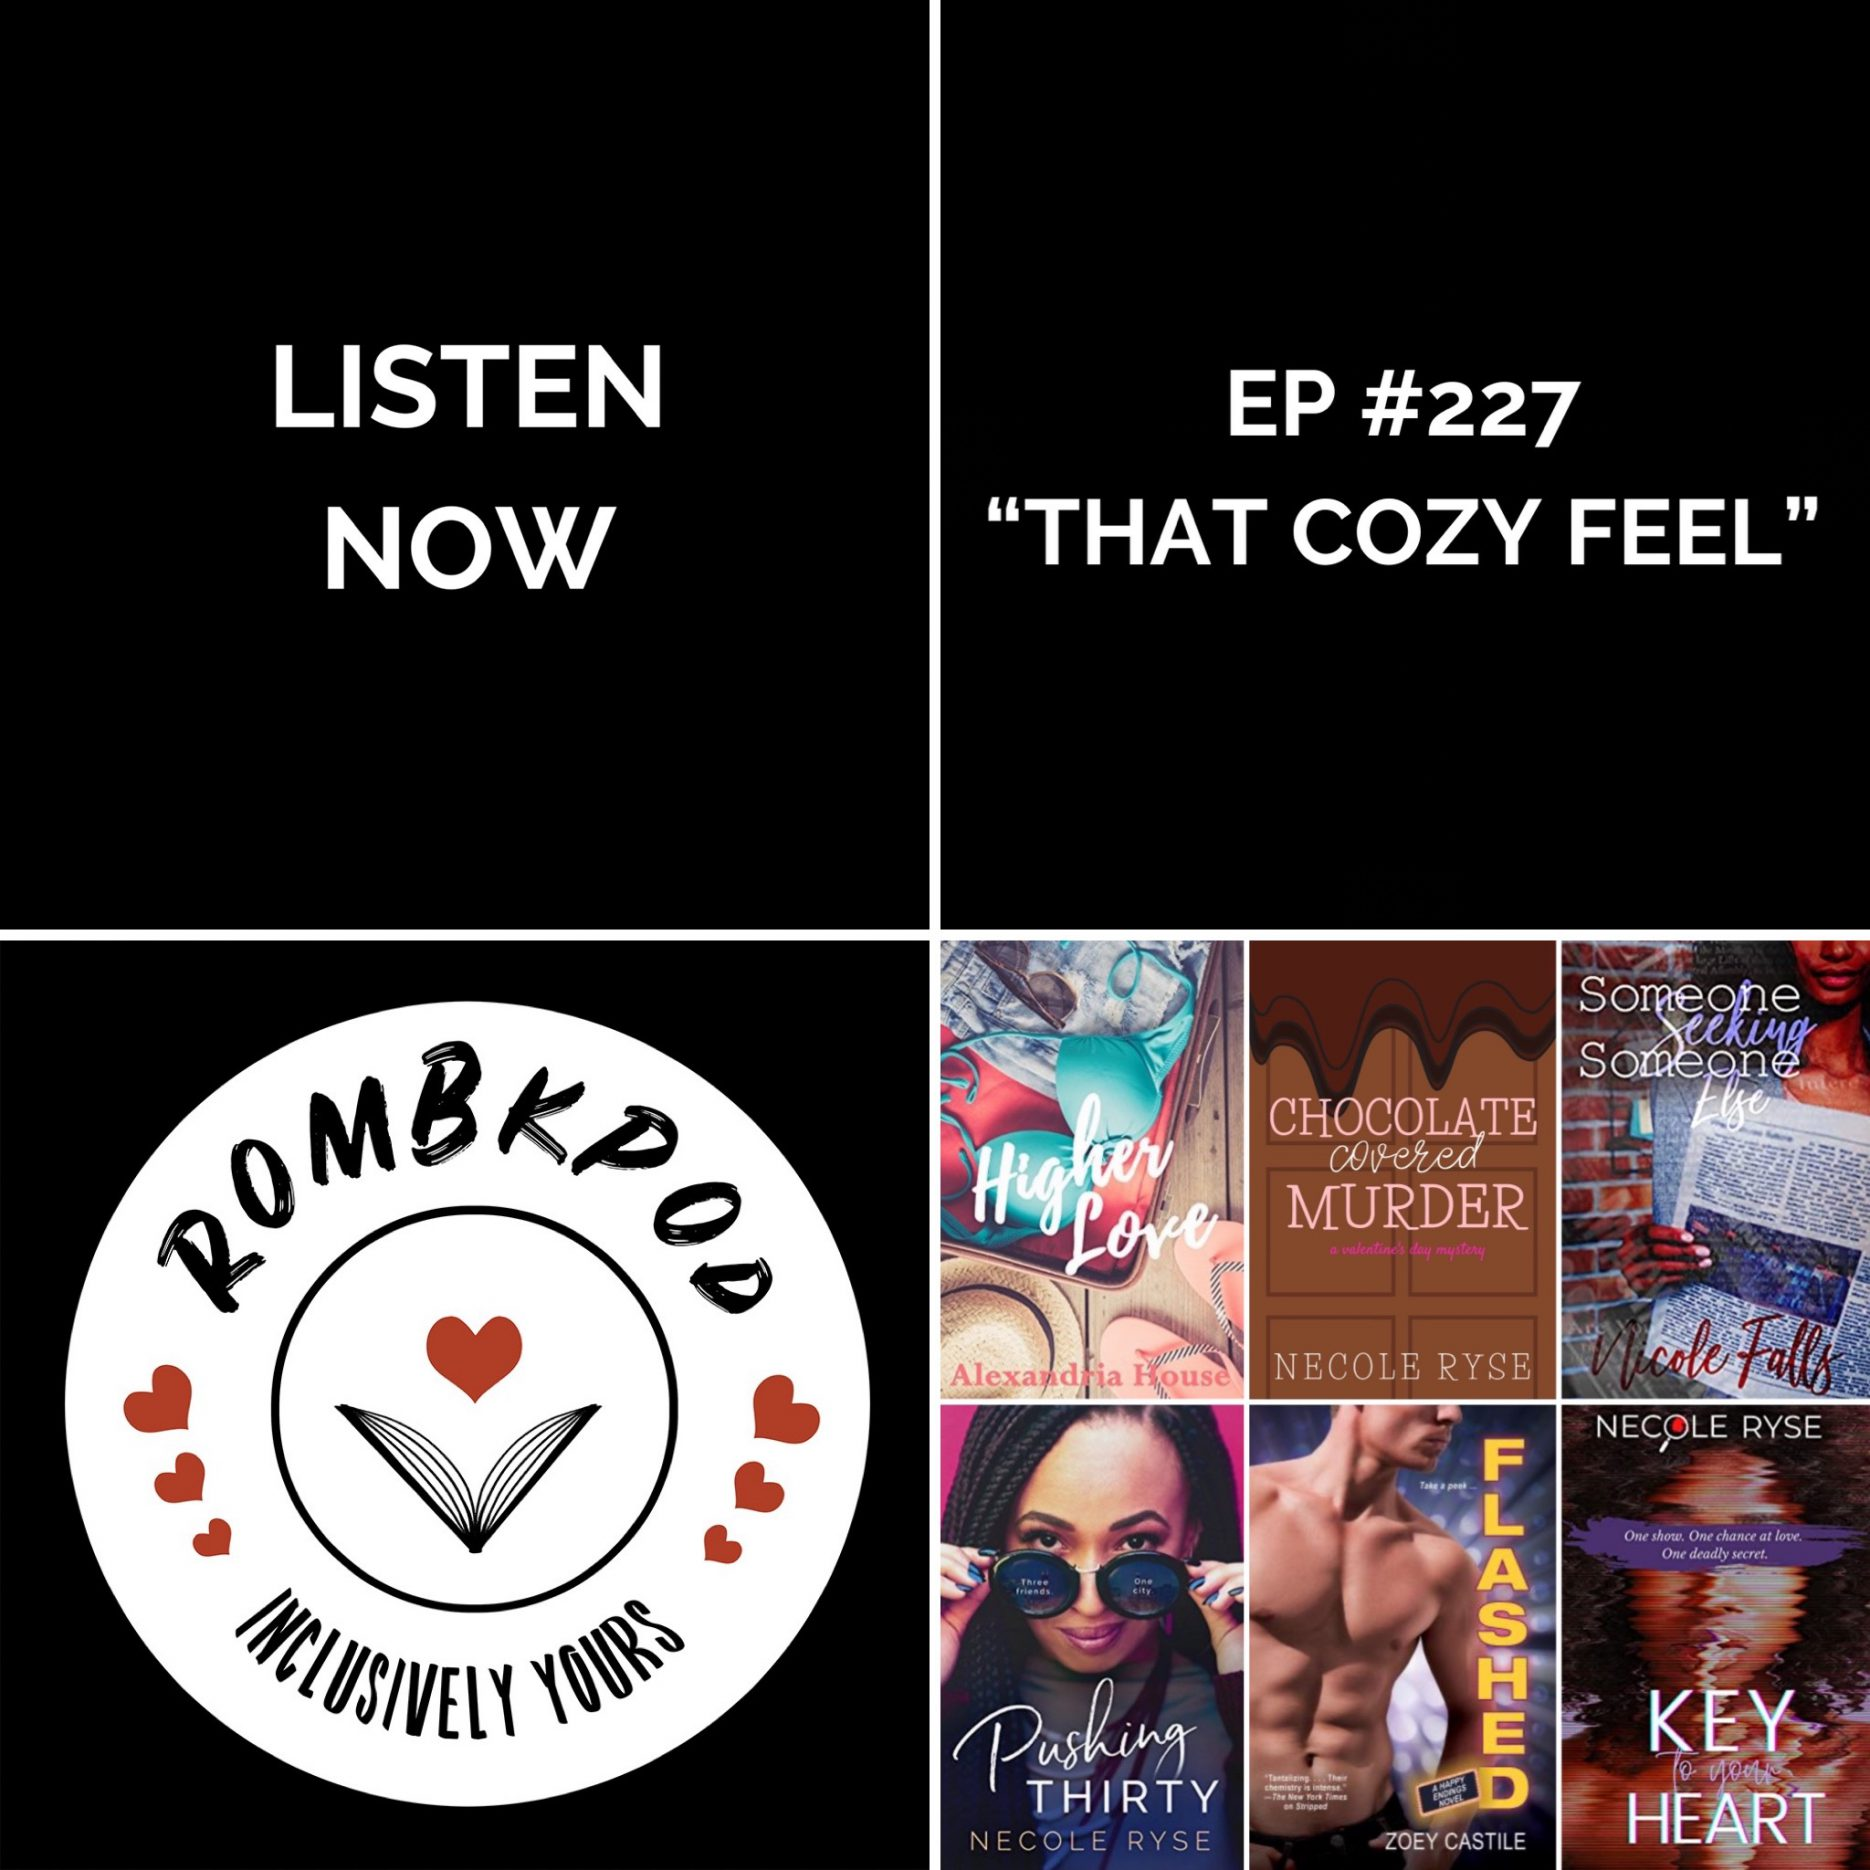 """IMAGE: lower left corner, RomBkPod heart logo; lower right corner, ep #227 book cover collage; IMAGE TEXT: Listen Now, ep #227 """"That Cozy Feel"""""""